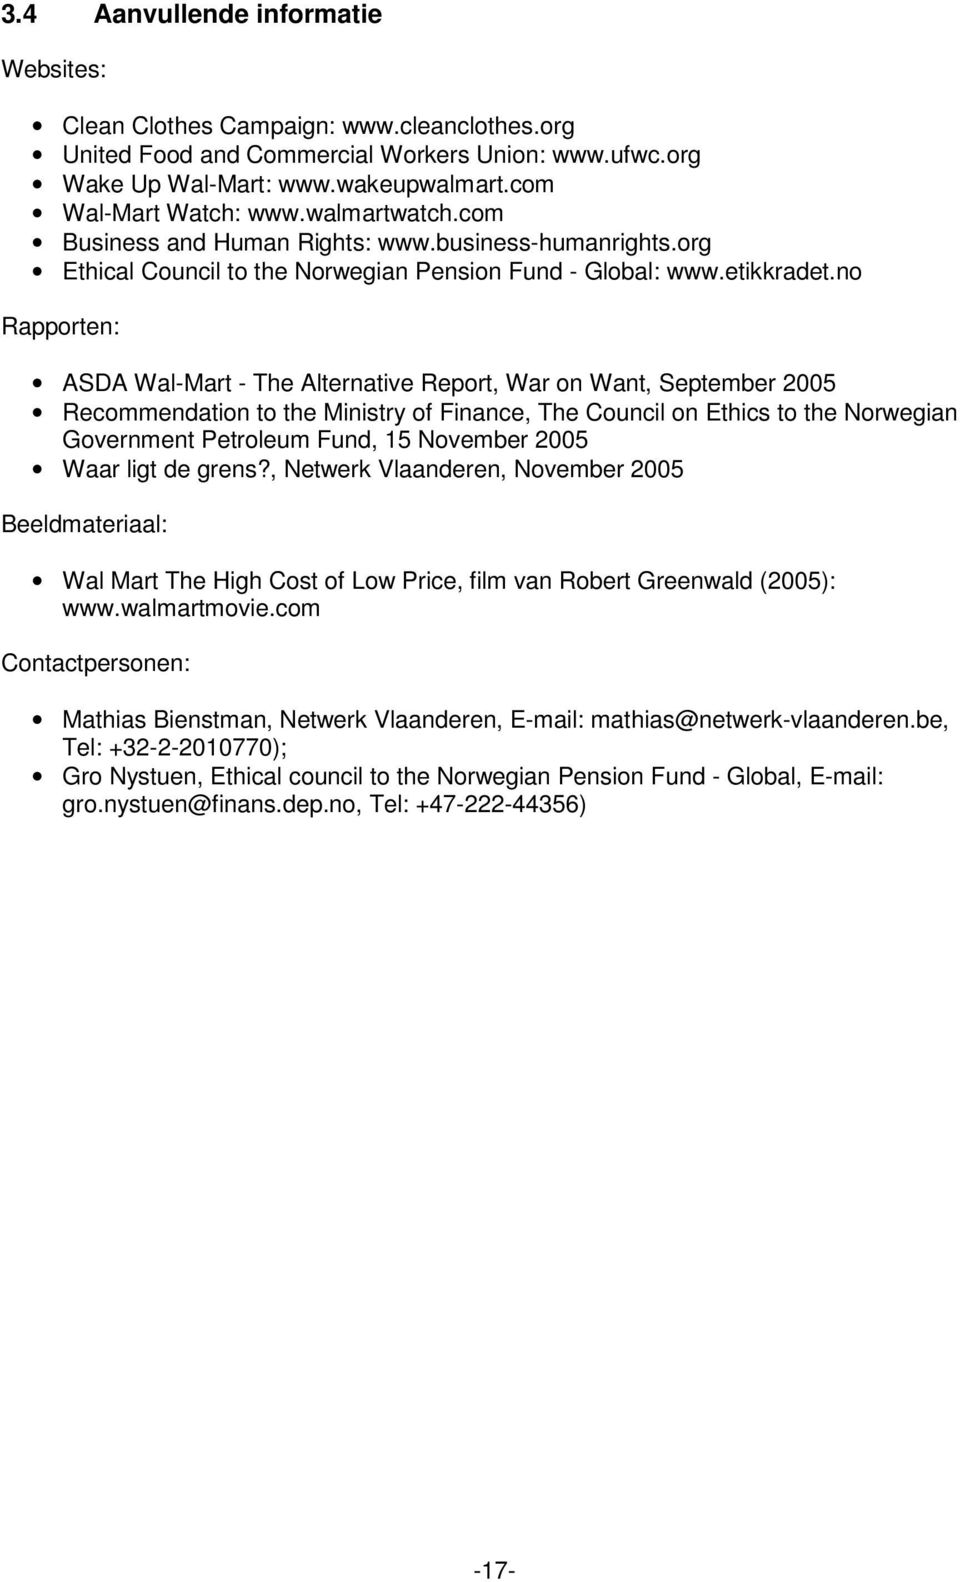 no Rapporten: ASDA Wal-Mart - The Alternative Report, War on Want, September 2005 Recommendation to the Ministry of Finance, The Council on Ethics to the Norwegian Government Petroleum Fund, 15